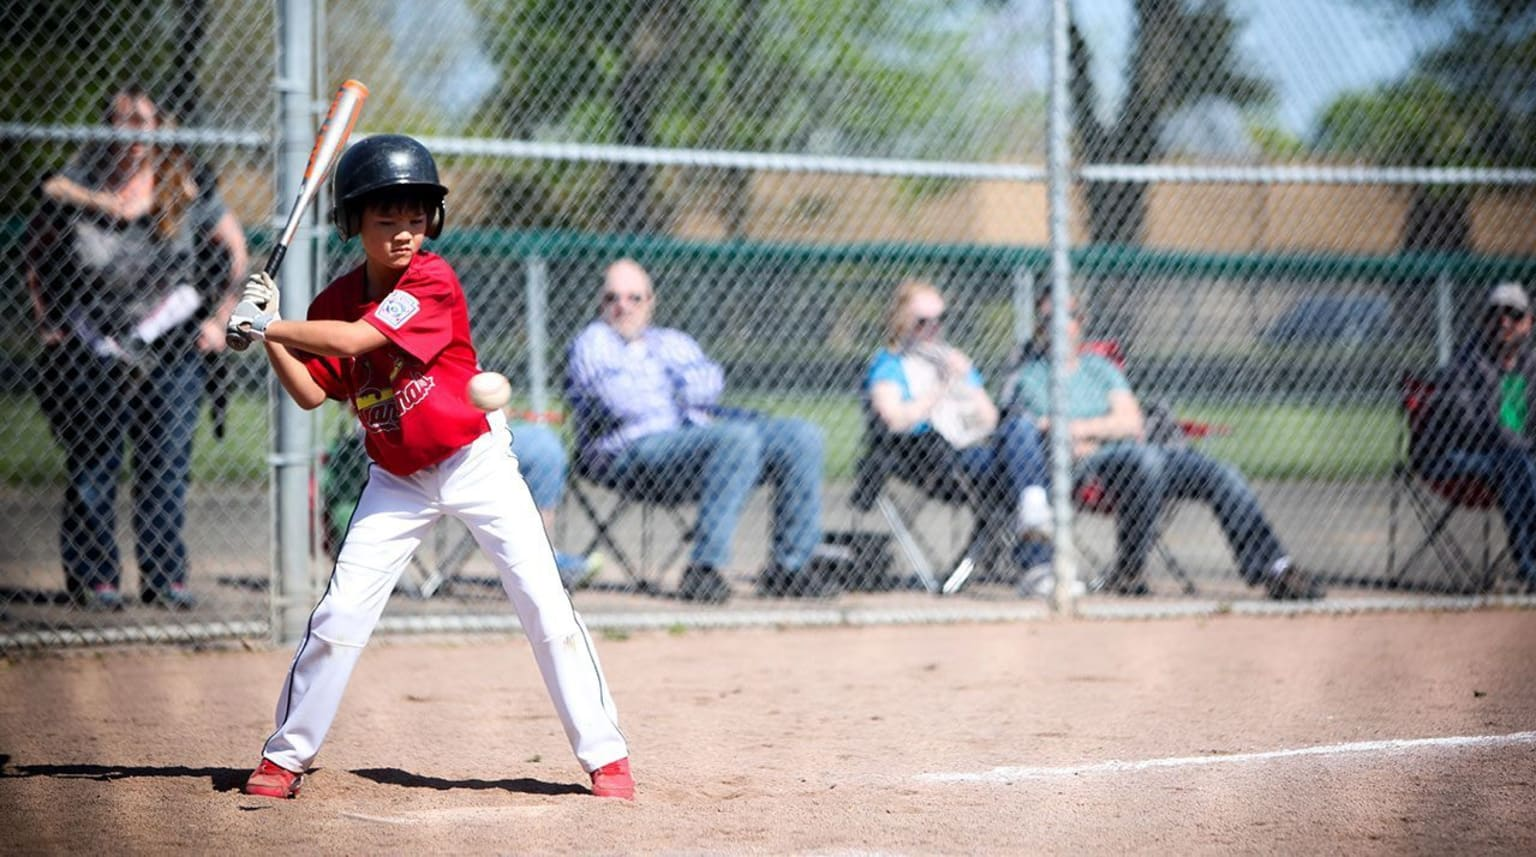 Common Little League Rule Misconceptions What Parents Need To Know